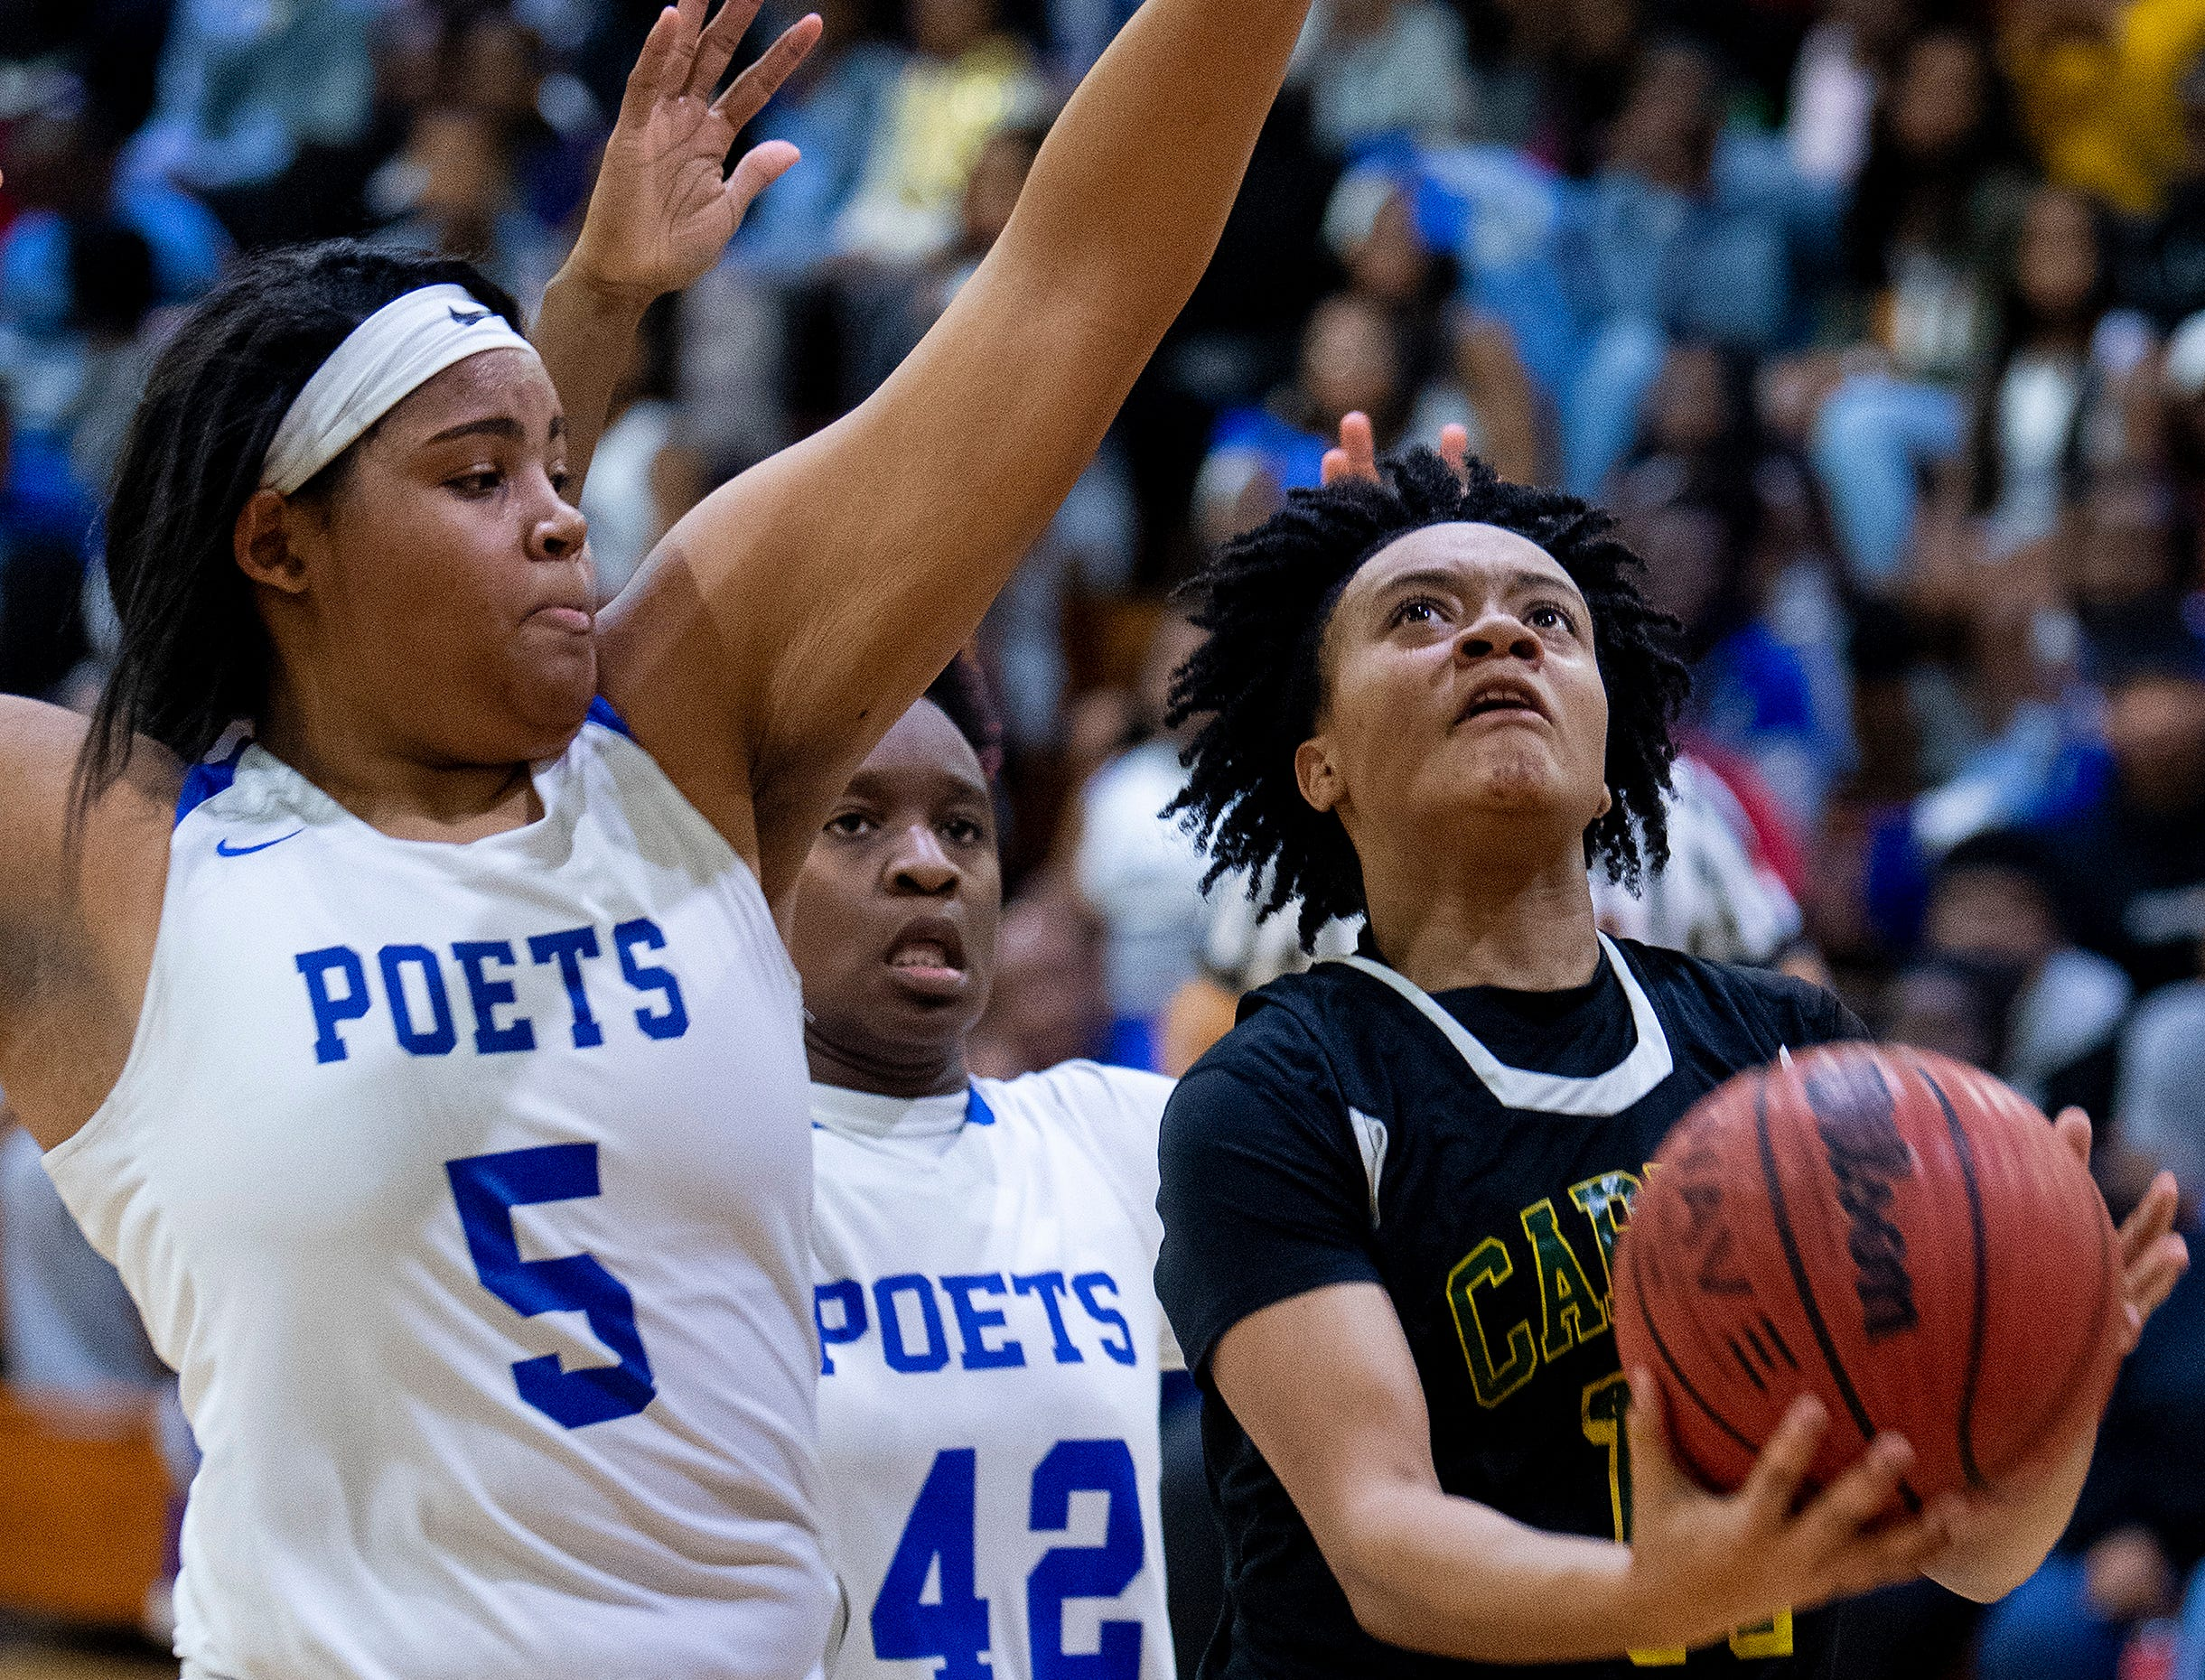 Carver's Aaliyah Ellis (11) against Lanier's Sakoya Knight (5) at the Lanier campus in Montgomery, Ala., on Friday January 11, 2019.